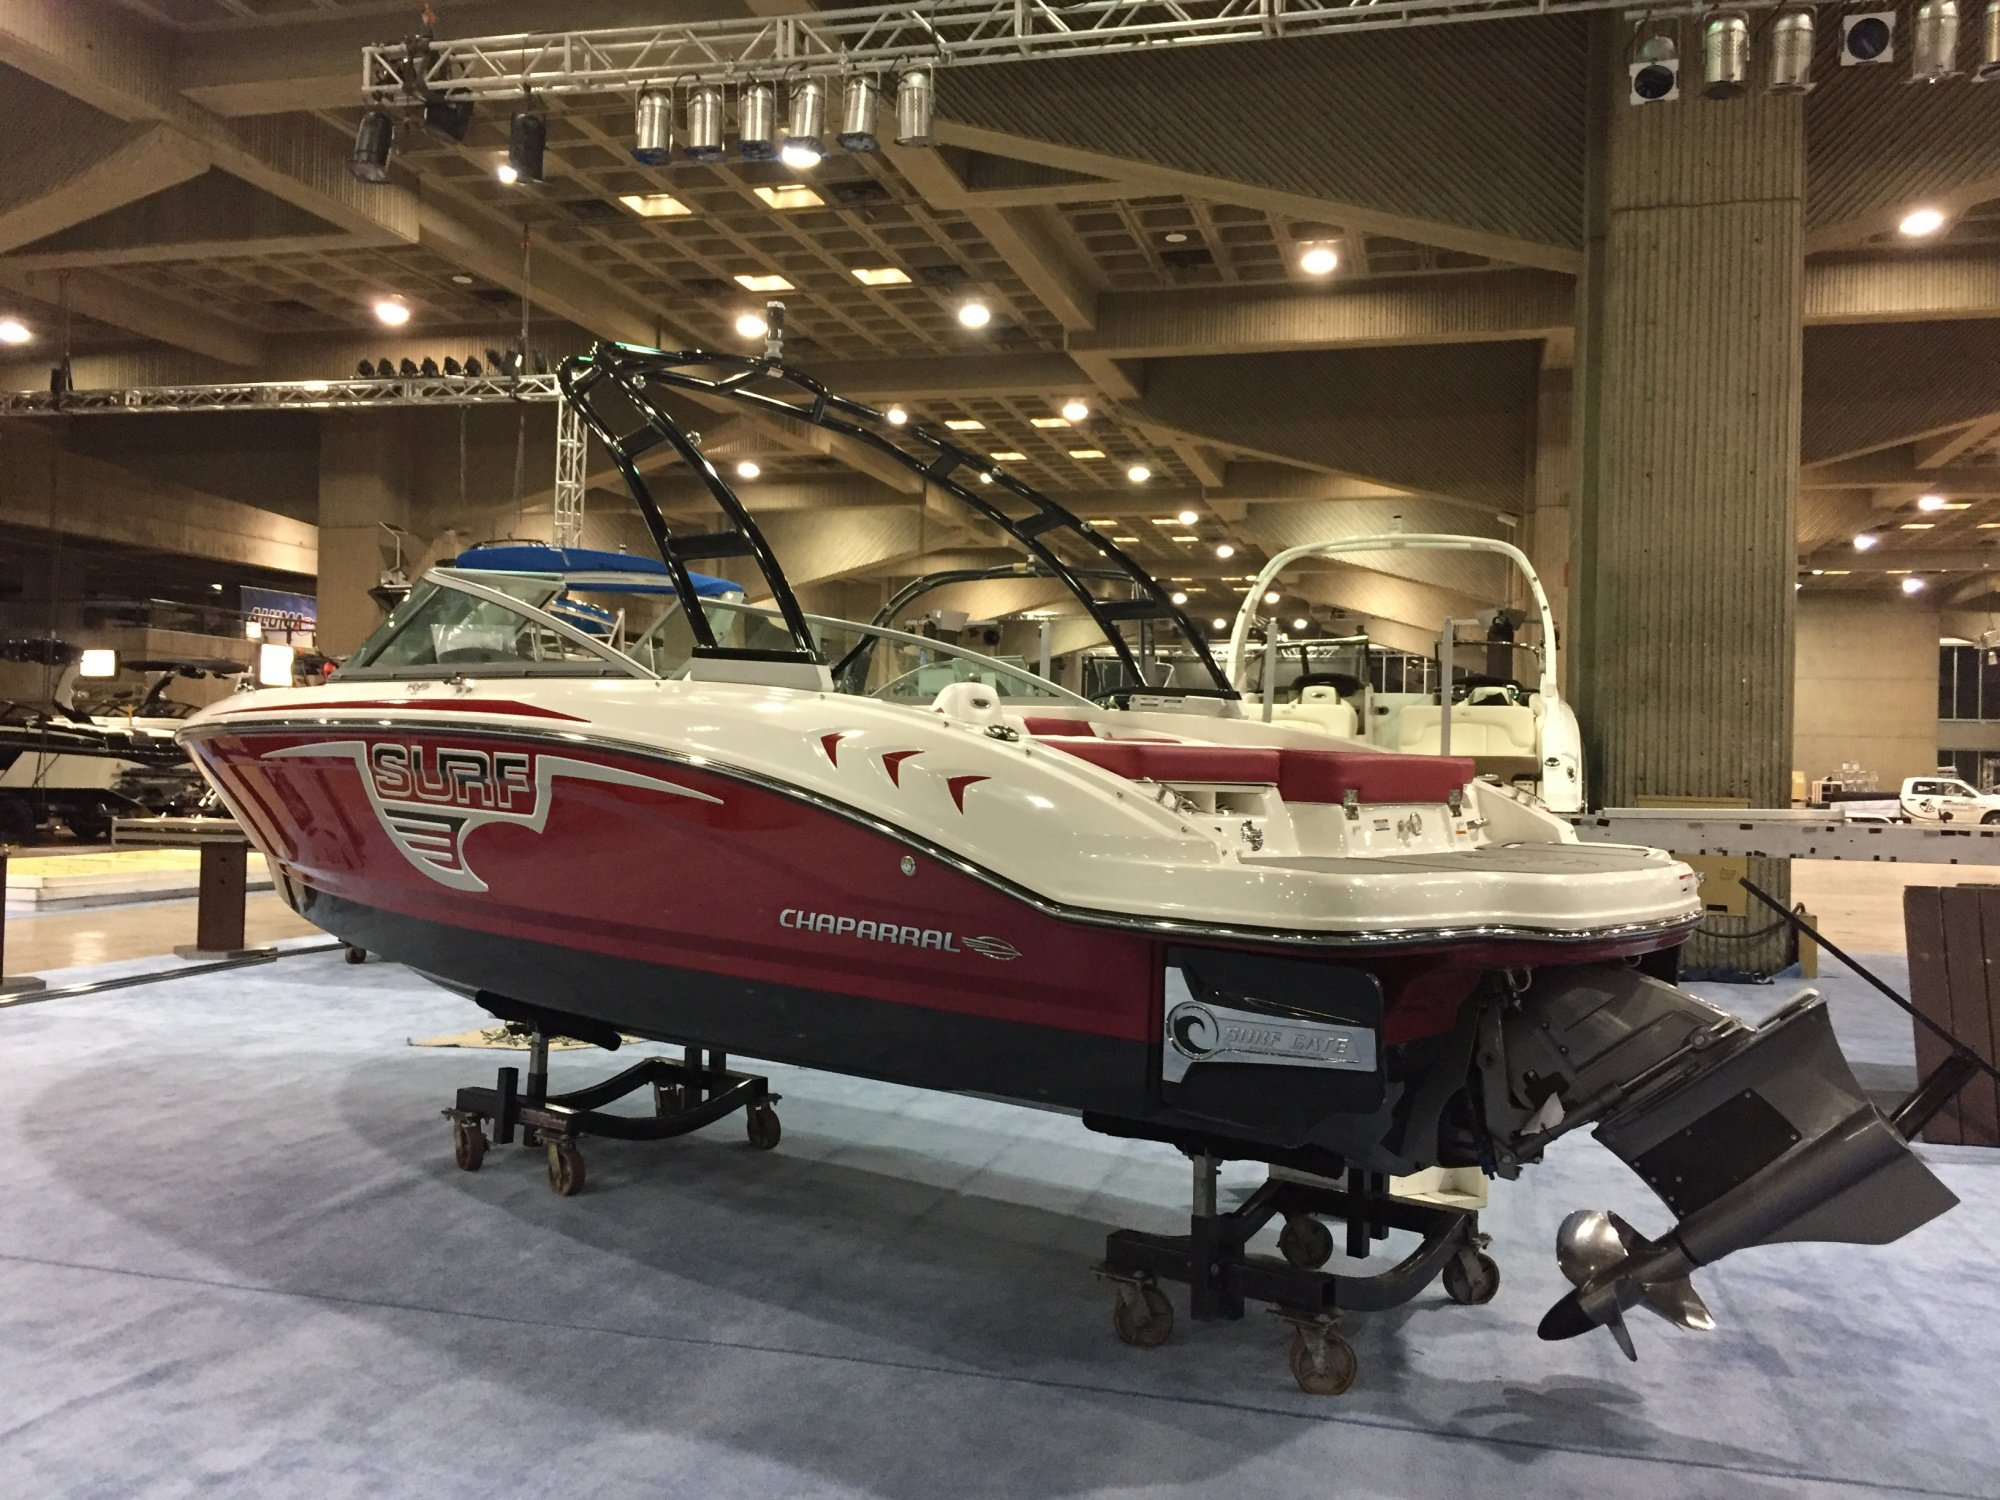 Chaparral SURF 21 - IMG_2005